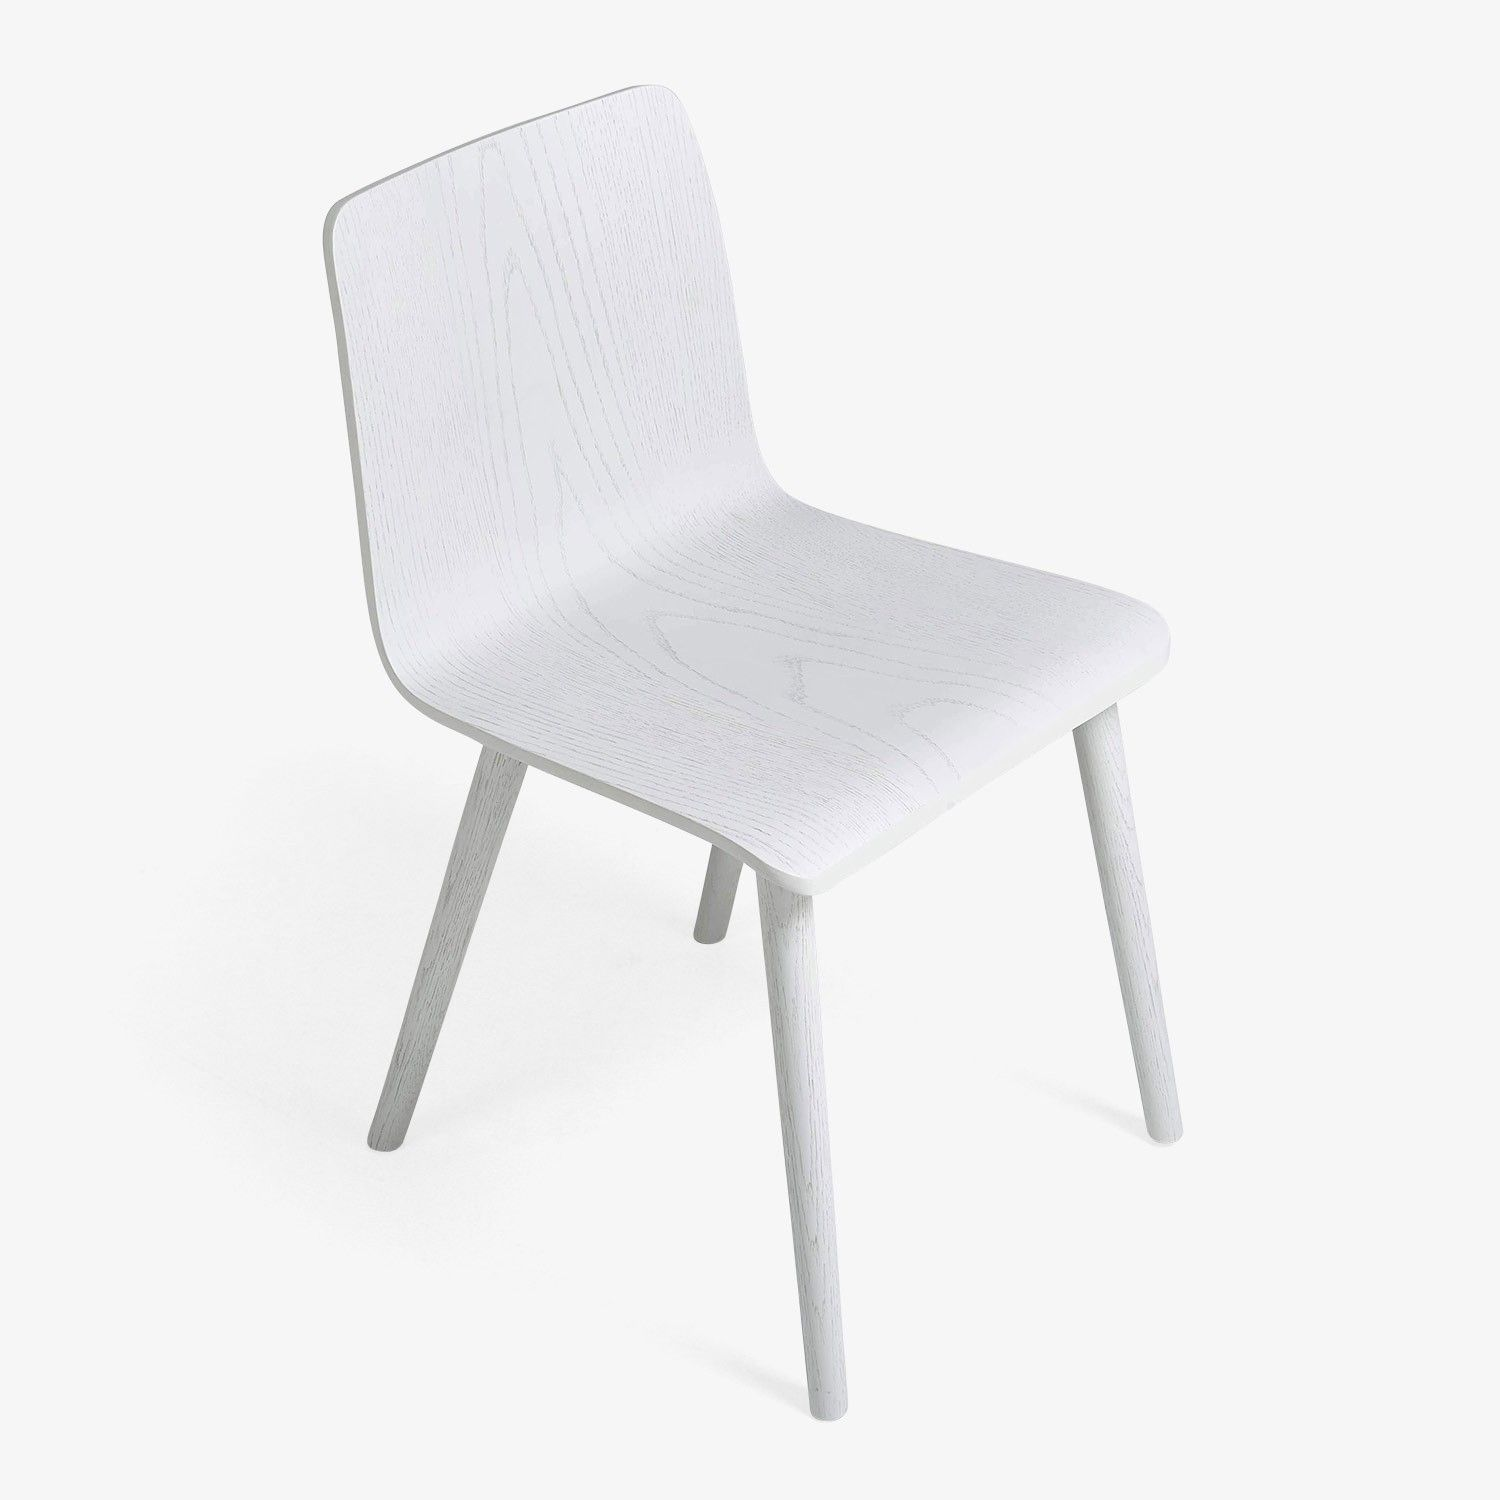 Discover The Cubist Oak Side Chair In Ice At ABC Carpet Home Crafted From White Demonstrates Streamlined Simplicity